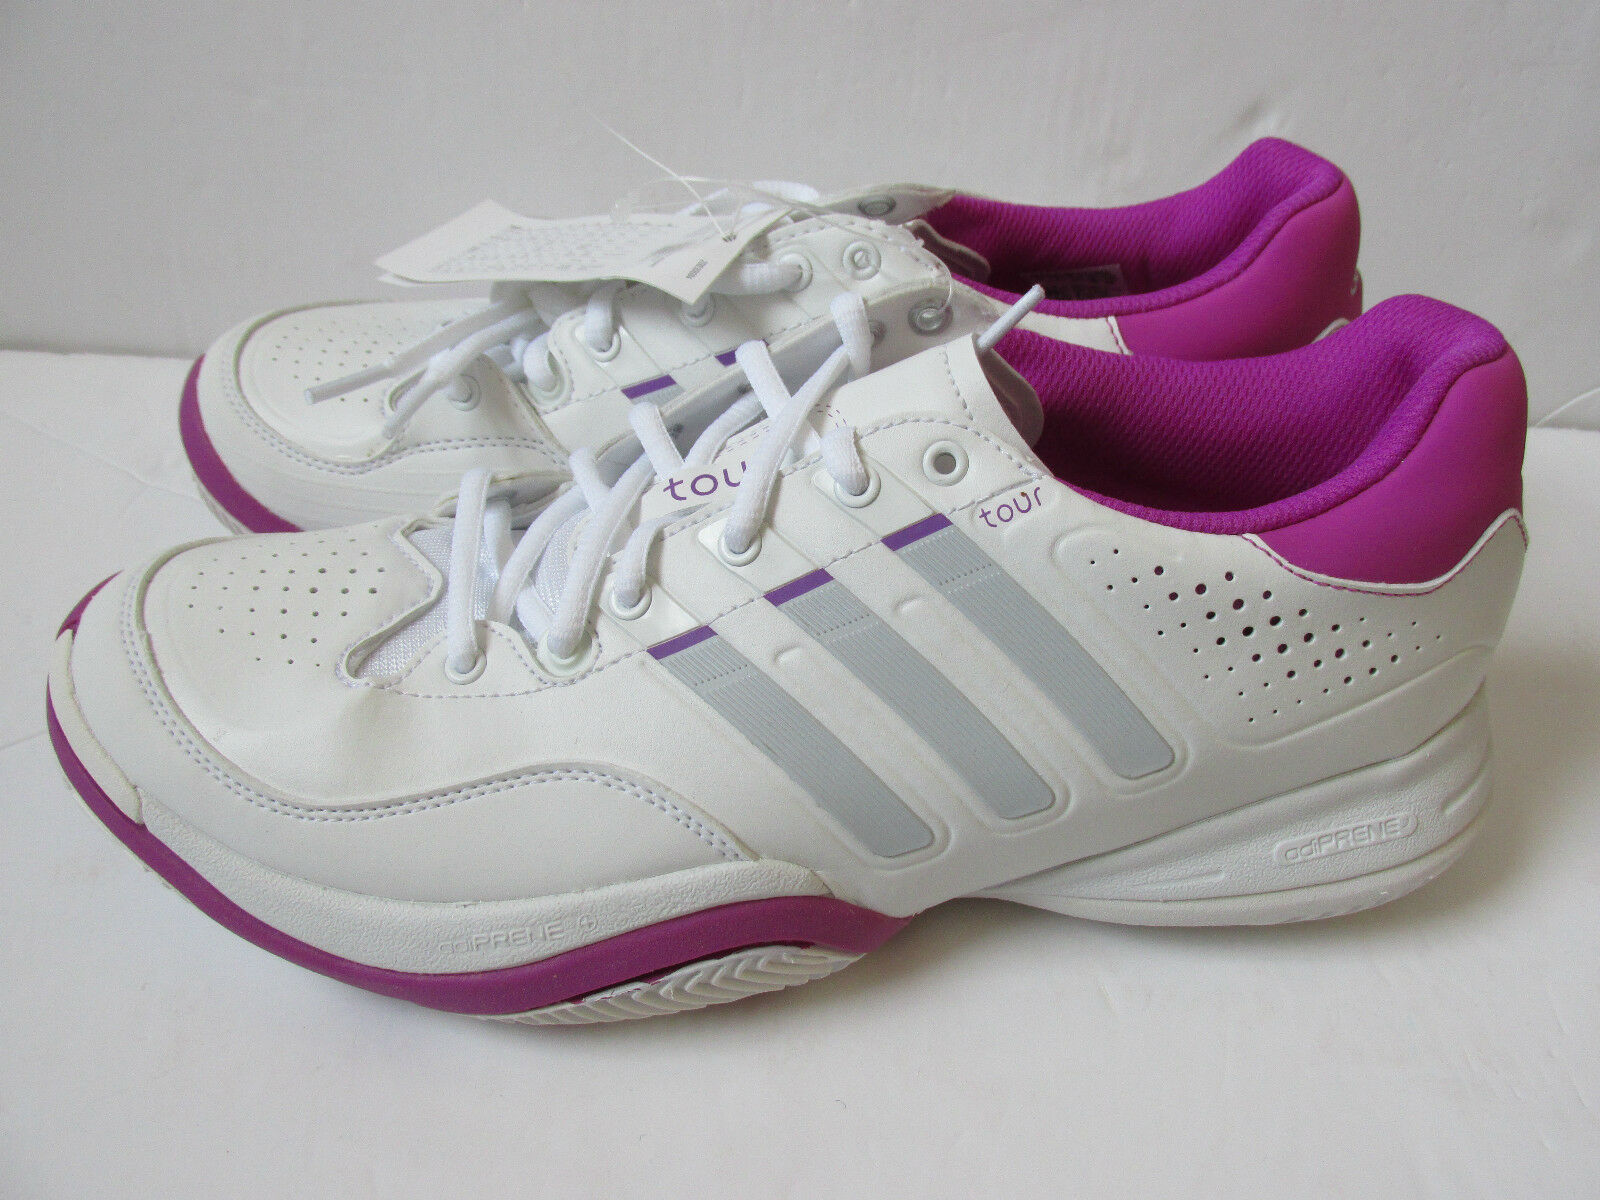 adidas womens tour w trainers v22040 sneakers shoes